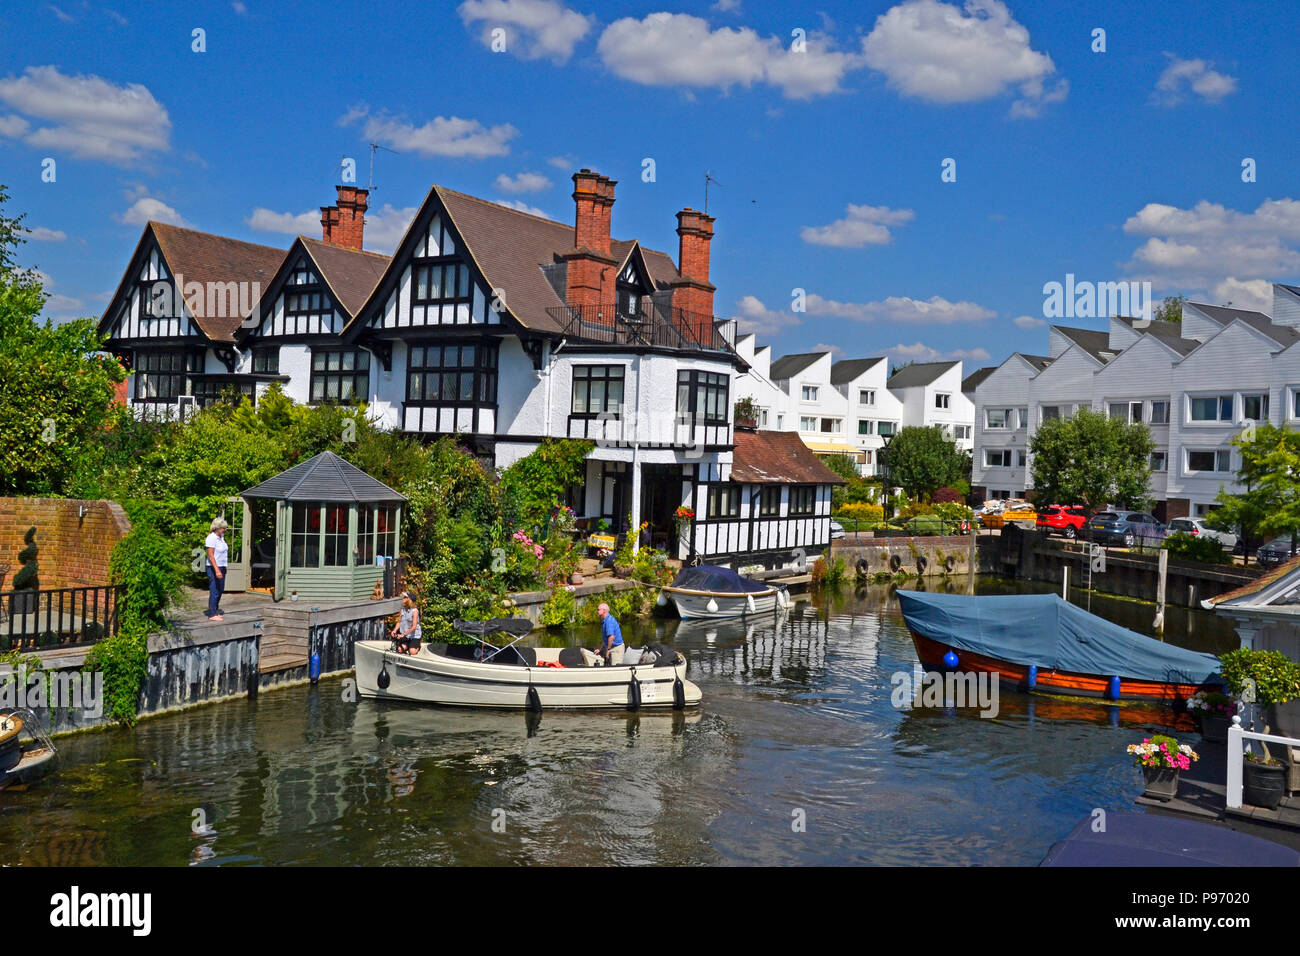 Marlow Lock on the River Thames in Marlow, Buckinghamshire, England, UK - Stock Image